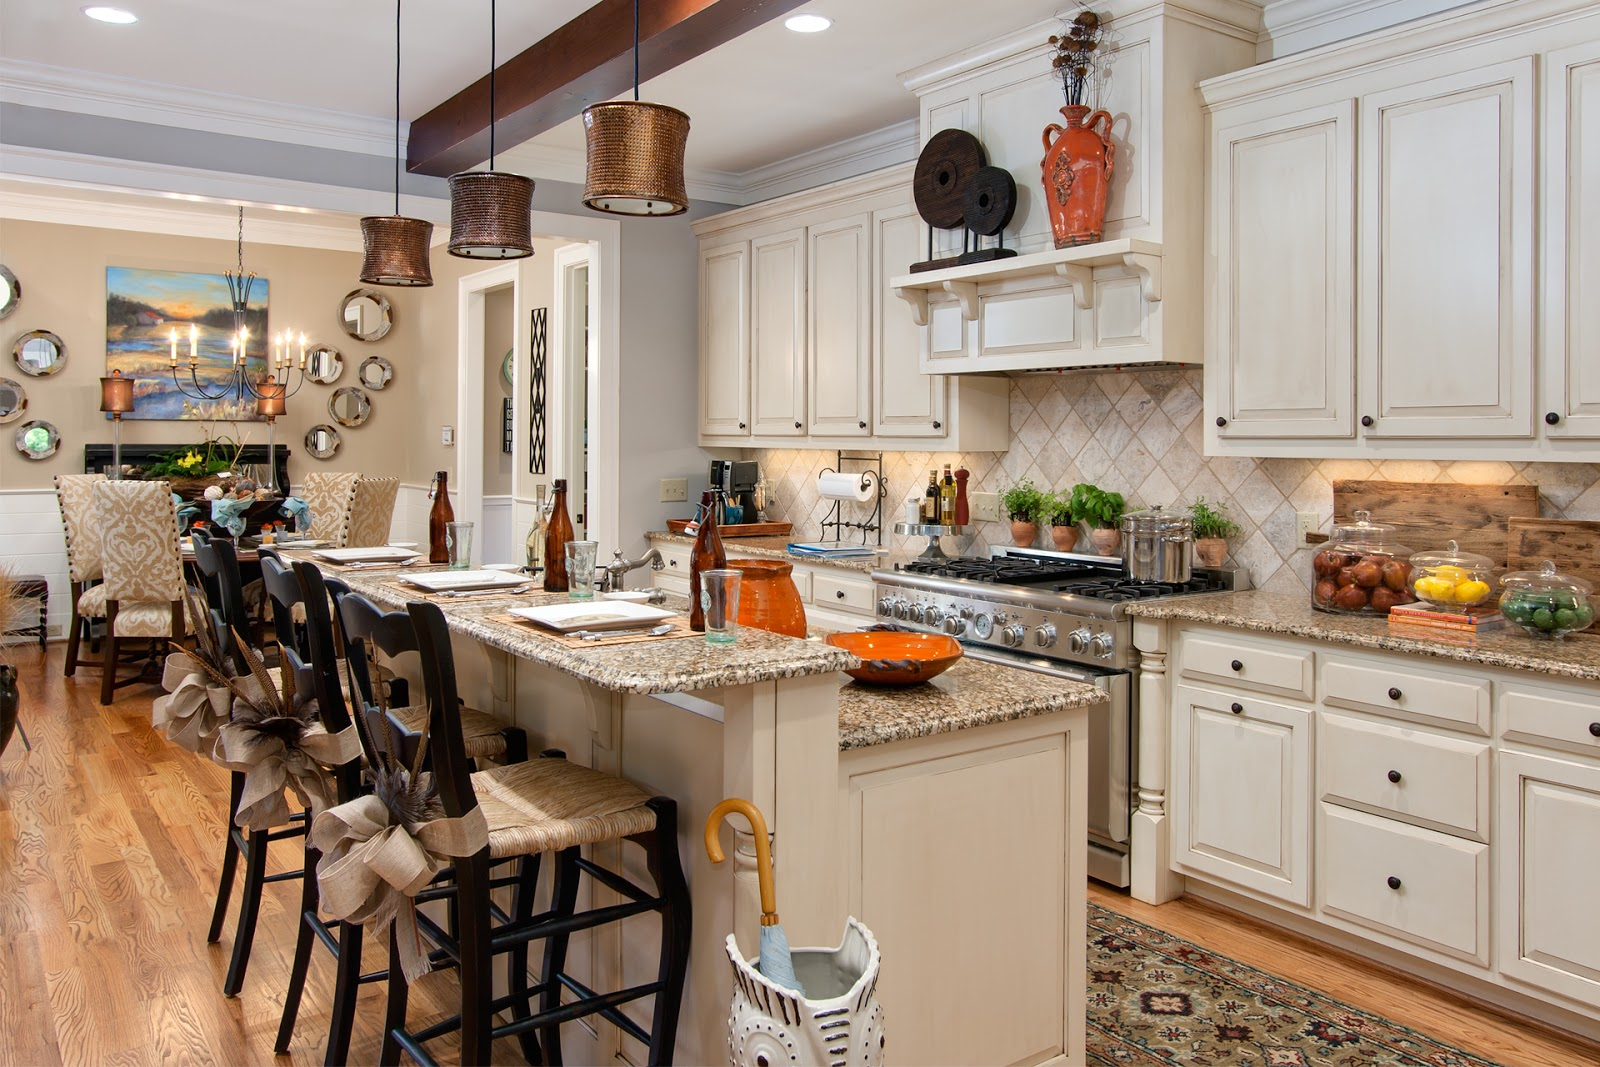 Great Interior Design Ideas For Kitchen And Living Room - Fitted kitchen design ideas